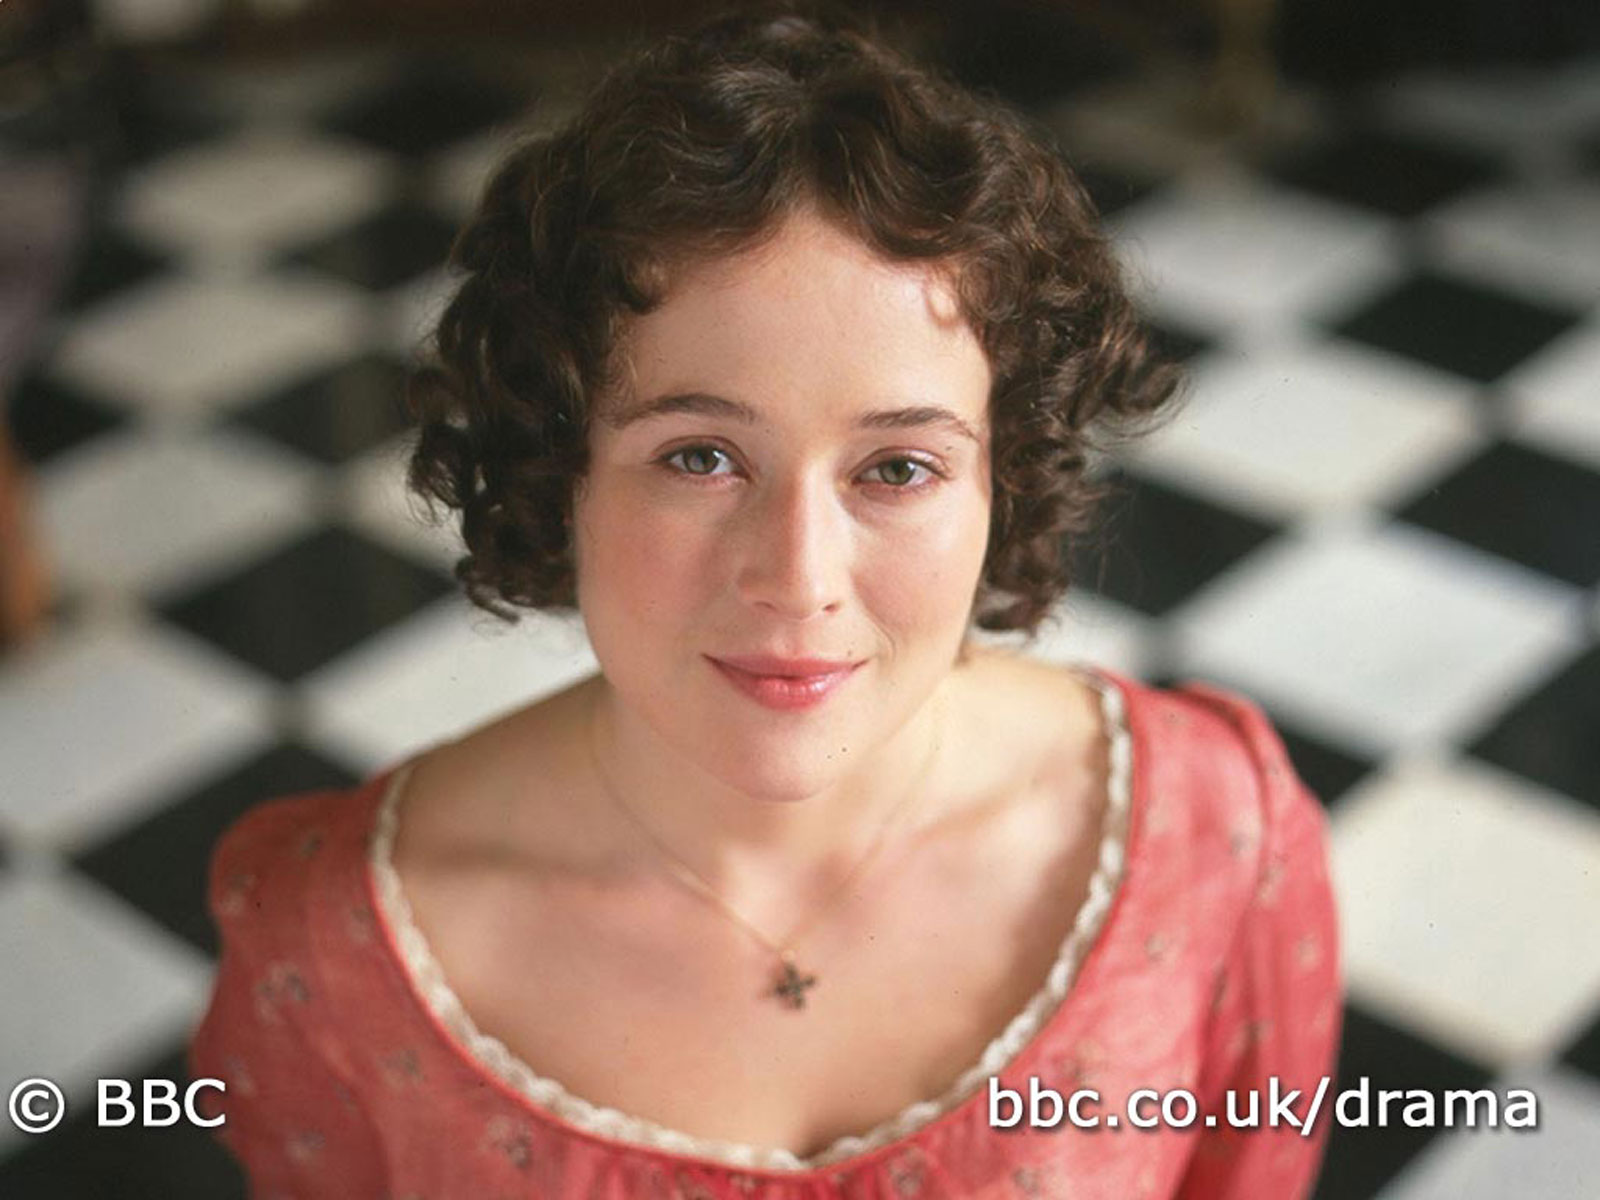 Pride and prejudice bbc radio drama download